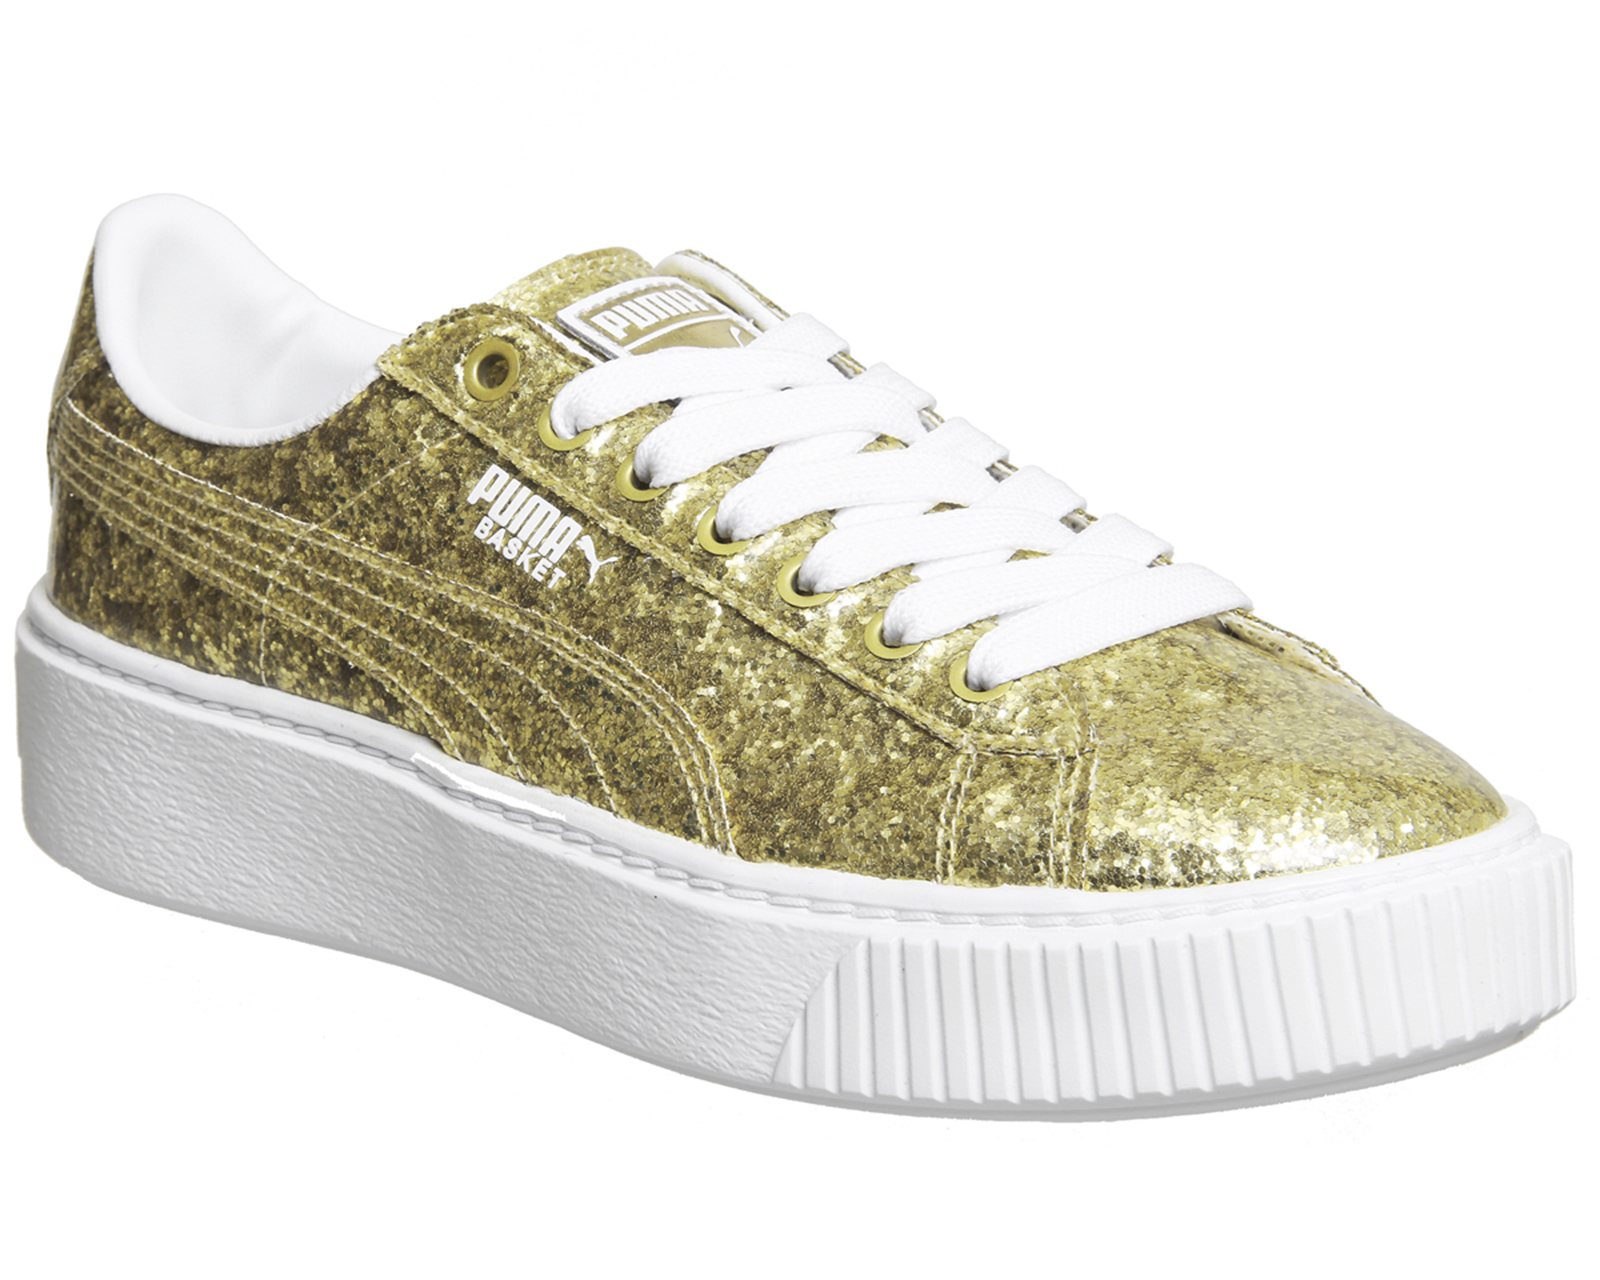 5dc00bb8279 Sentinel Womens Puma Basket Platform Trainers Gold Glitter White Trainers  Shoes